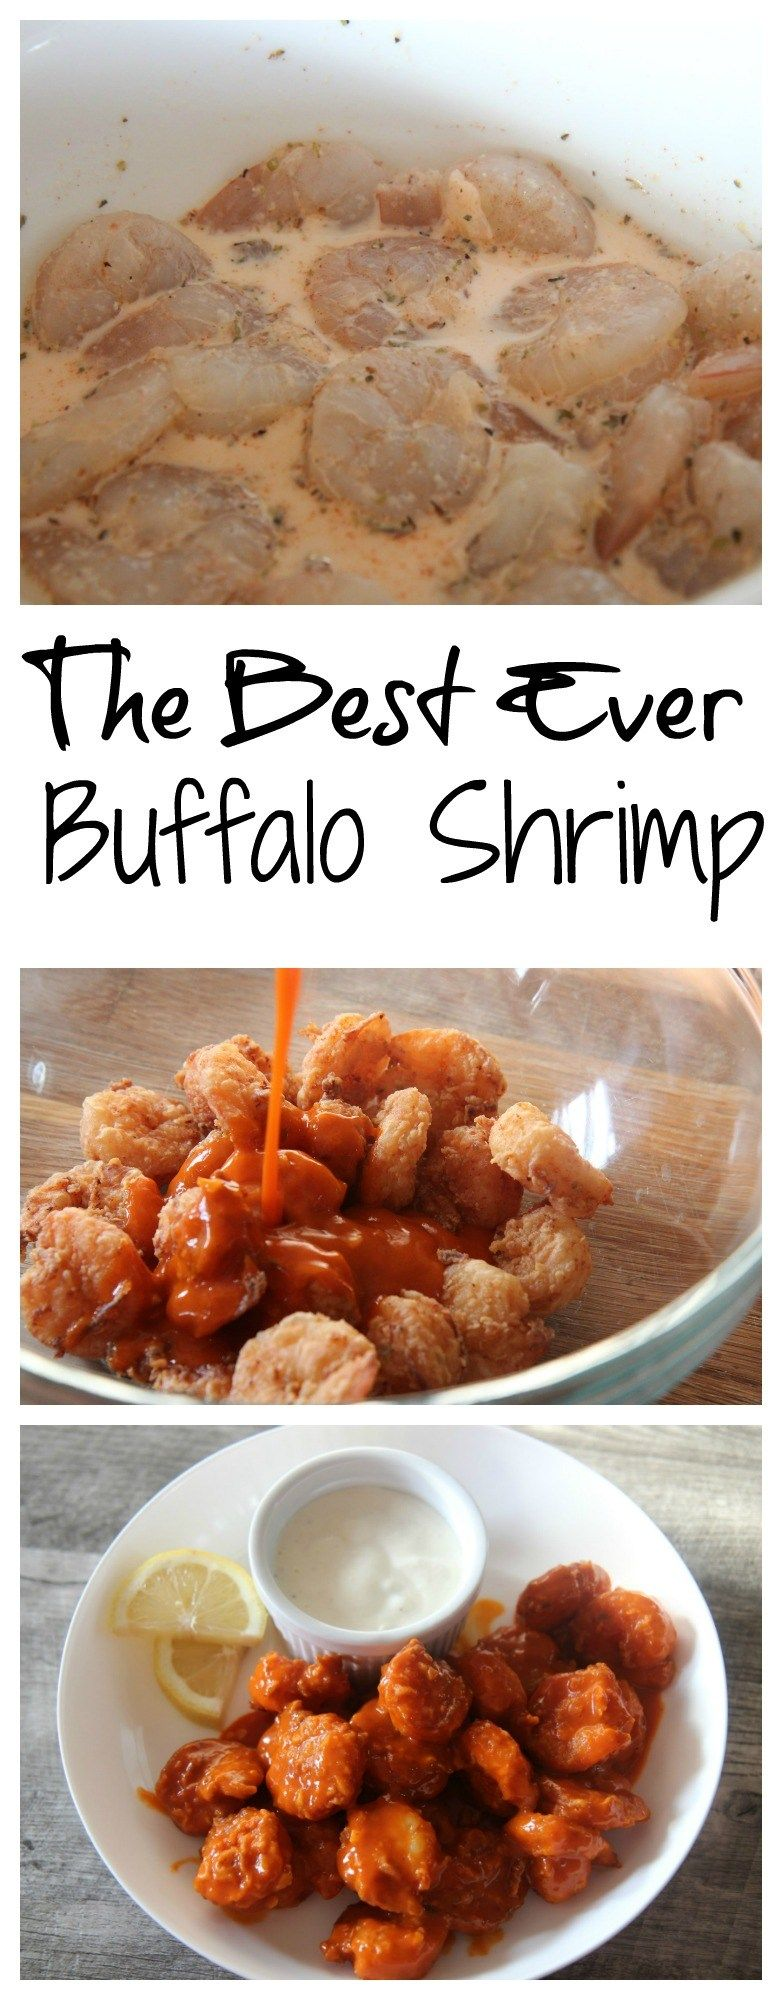 Buffalo Shrimp #buffaloshrimp